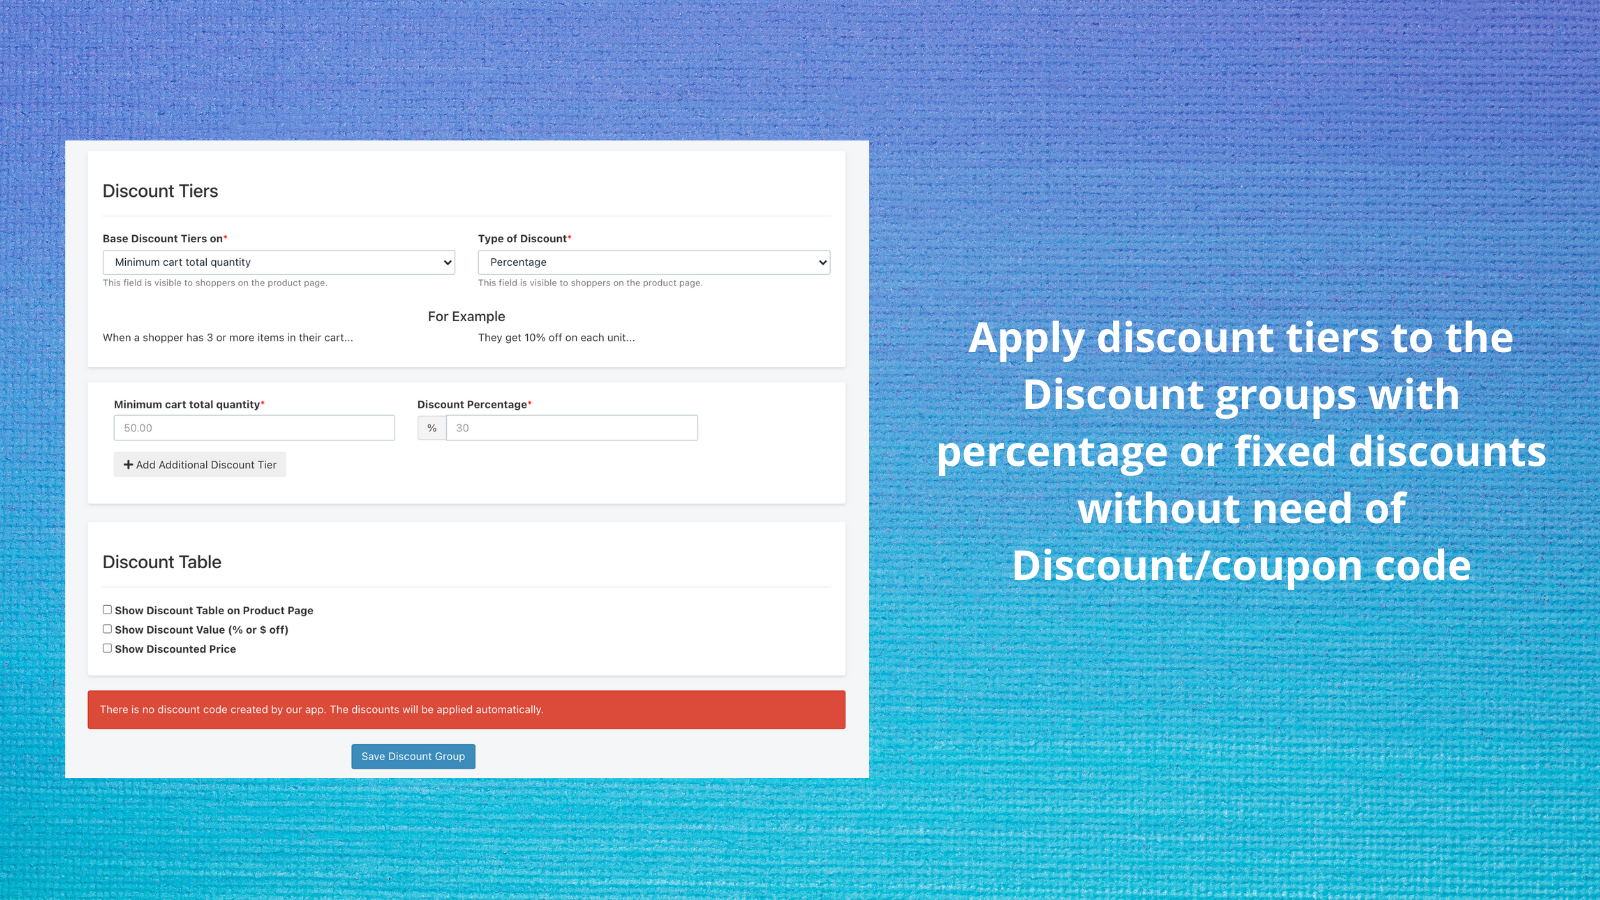 Use Discount Tiers - Fixed or Percentage discounts